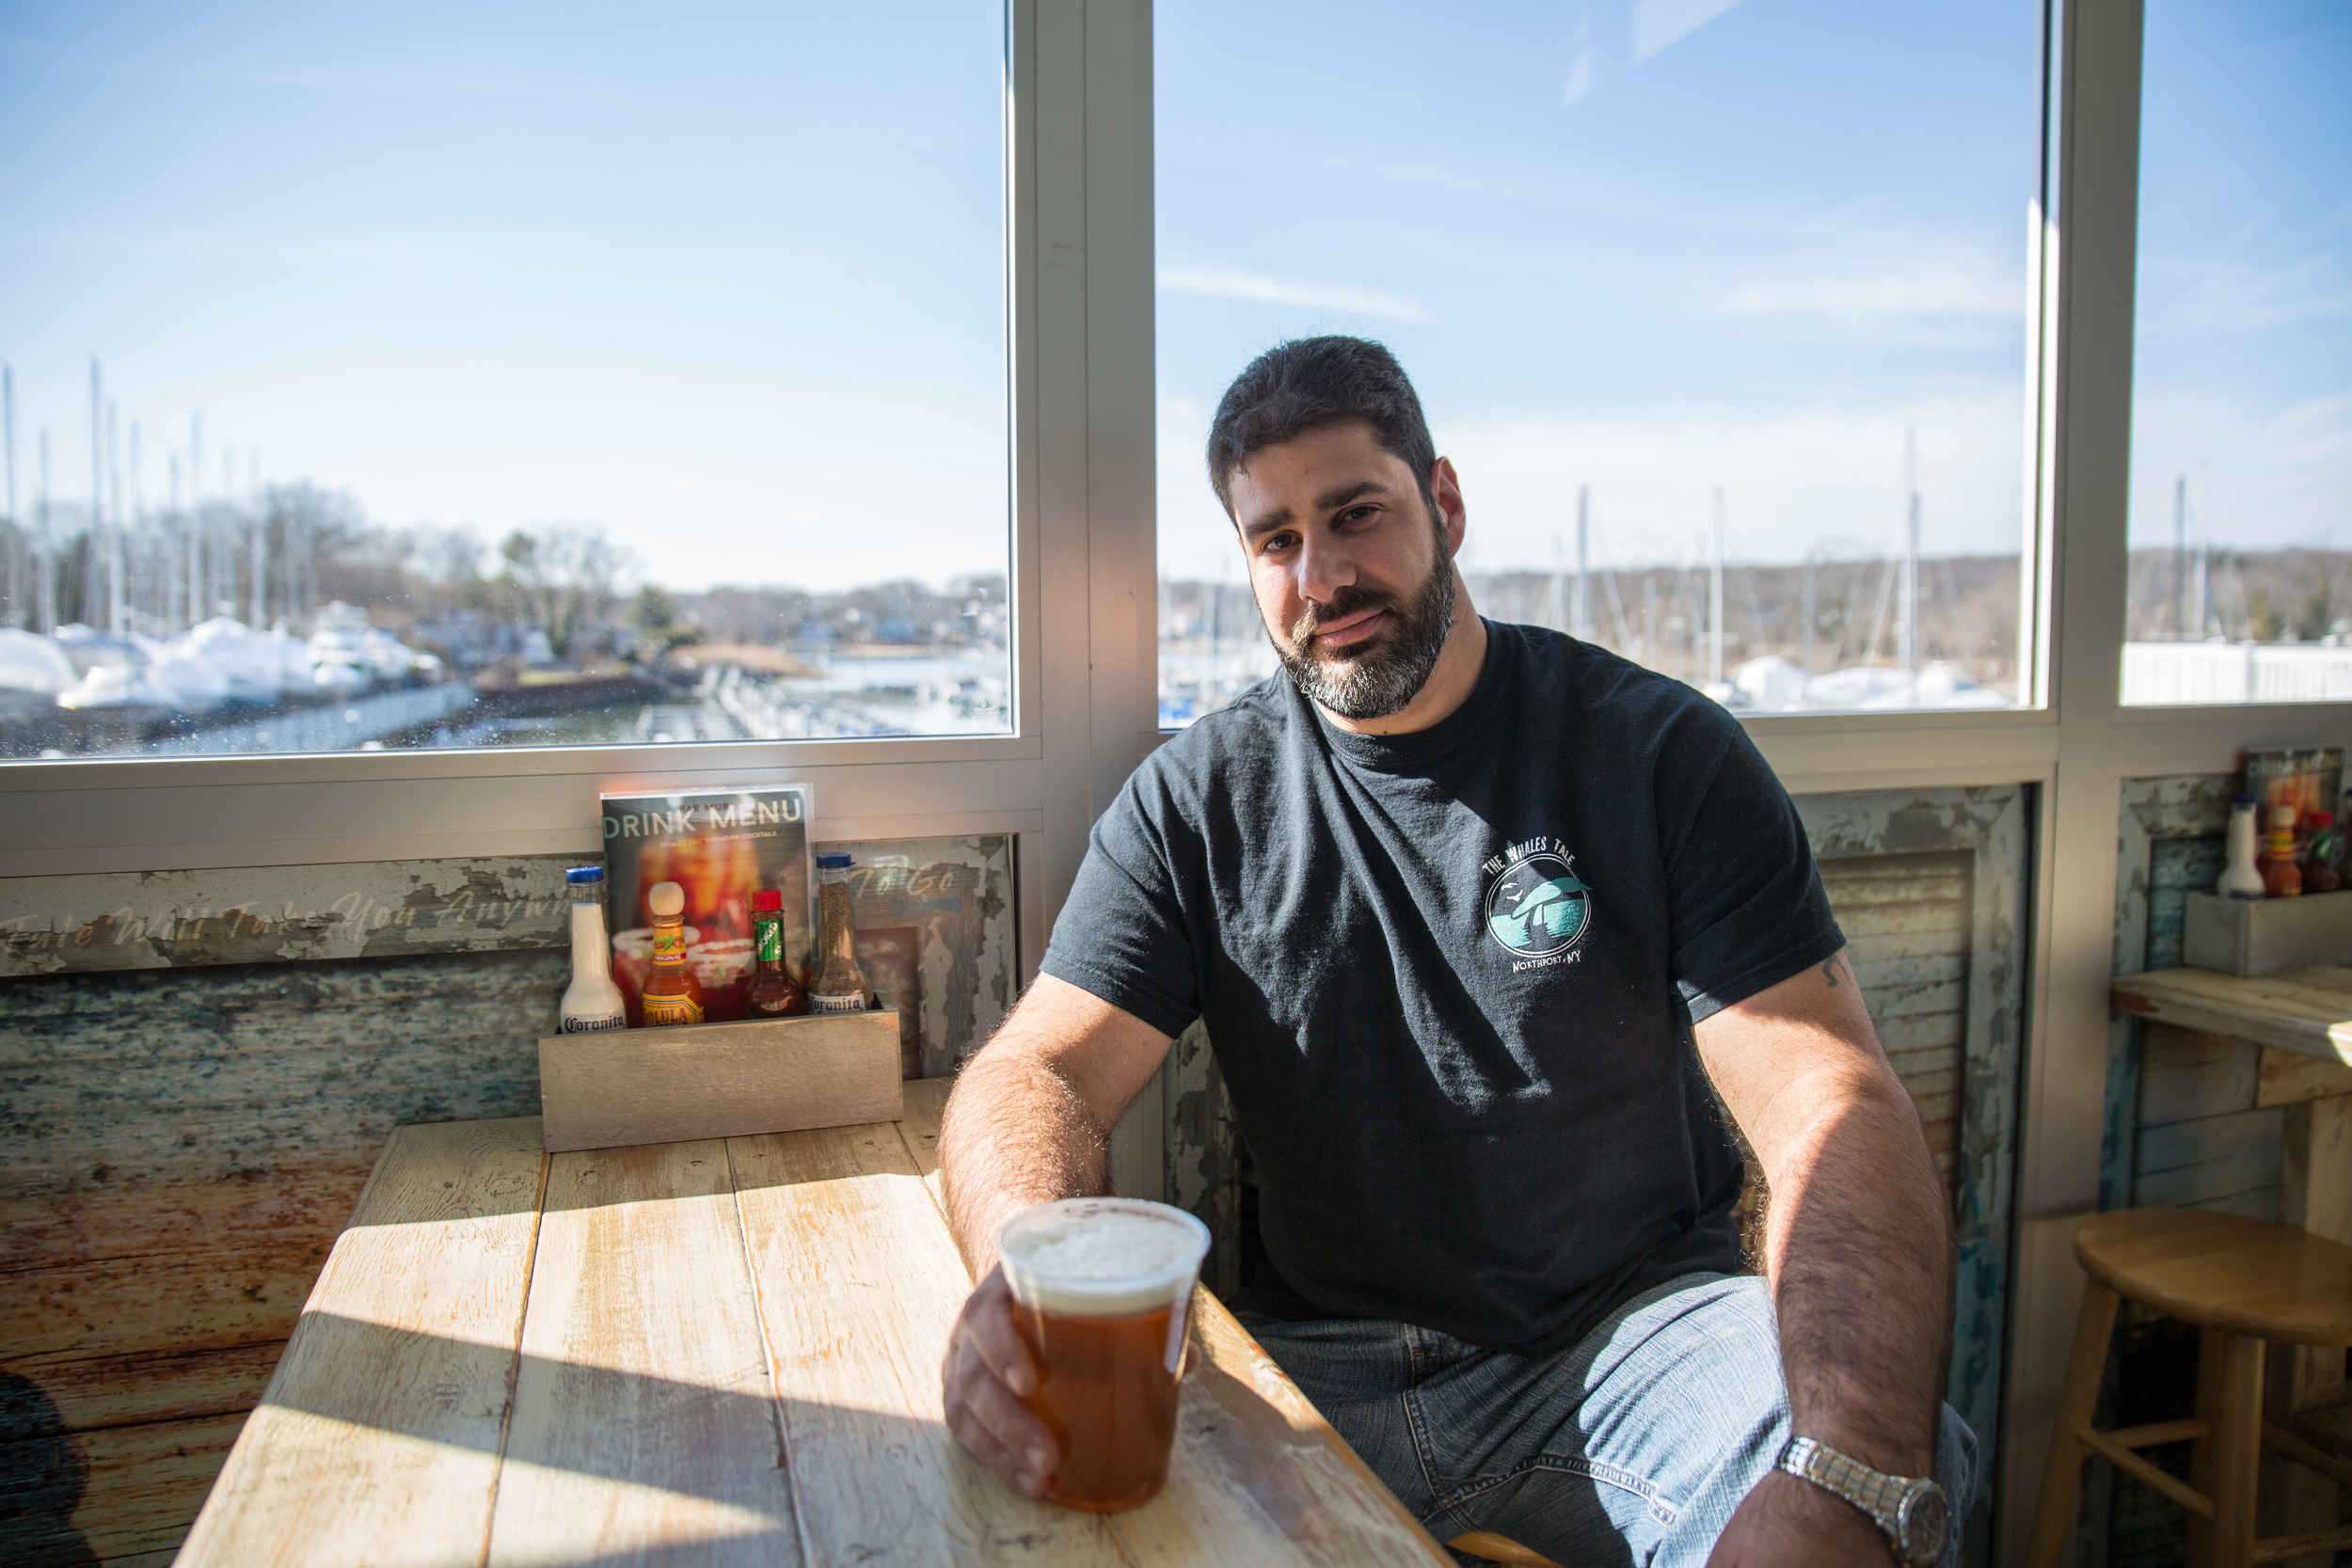 Whales Tale owner Sosh Andriano recently got approval to build Harbor Head brewery next door to his Fort Salonga Road restaurant in the Britannia Yachting Center.